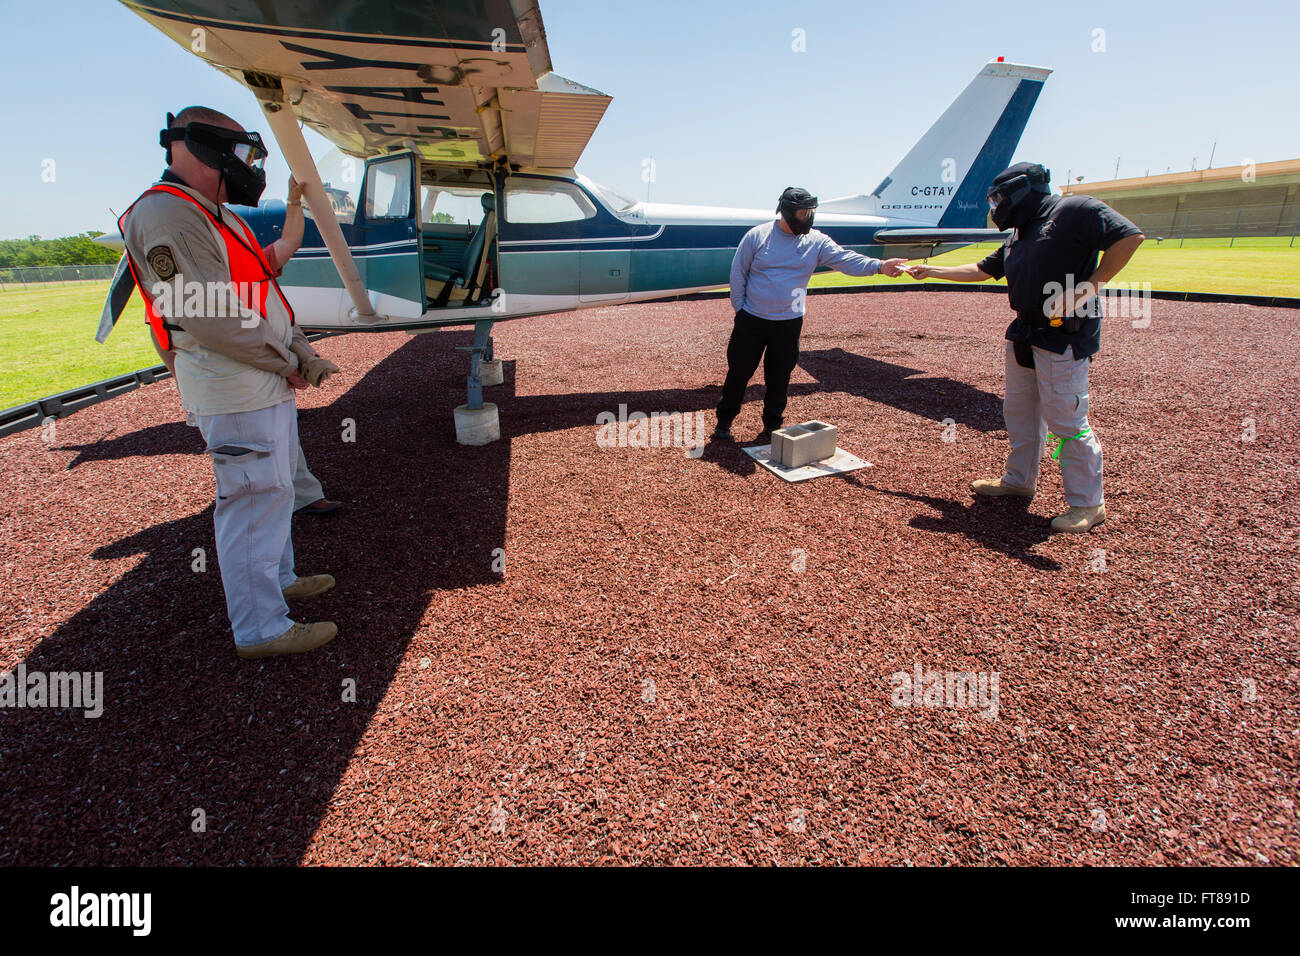 CBP Office of Air and Marine Pilots undergo pilot identification training at a National Air Training Center location - Stock Image